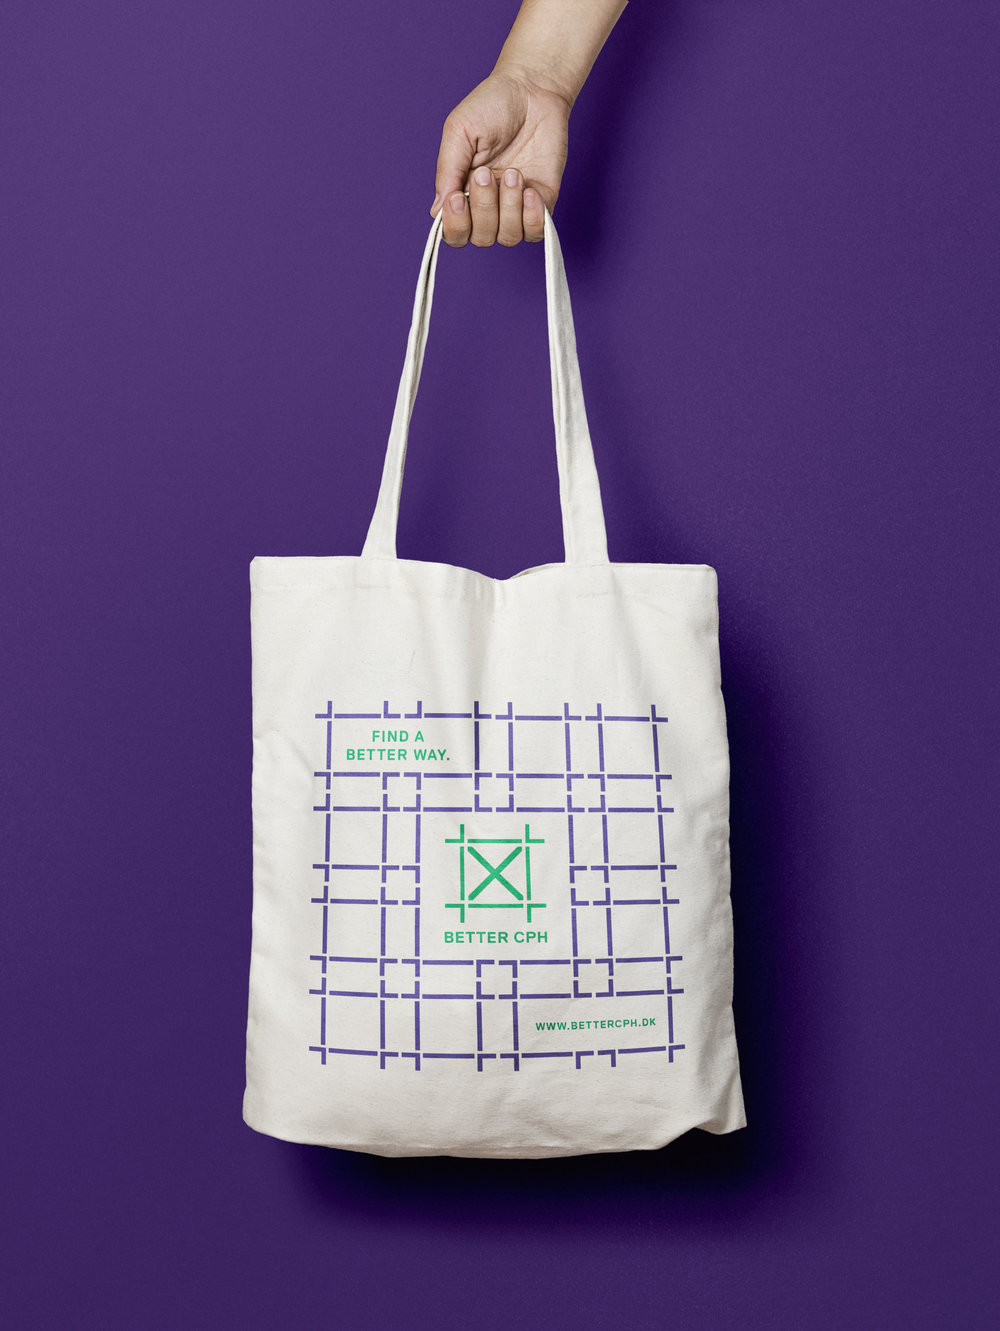 Better_finaltotebag_mockup.jpg